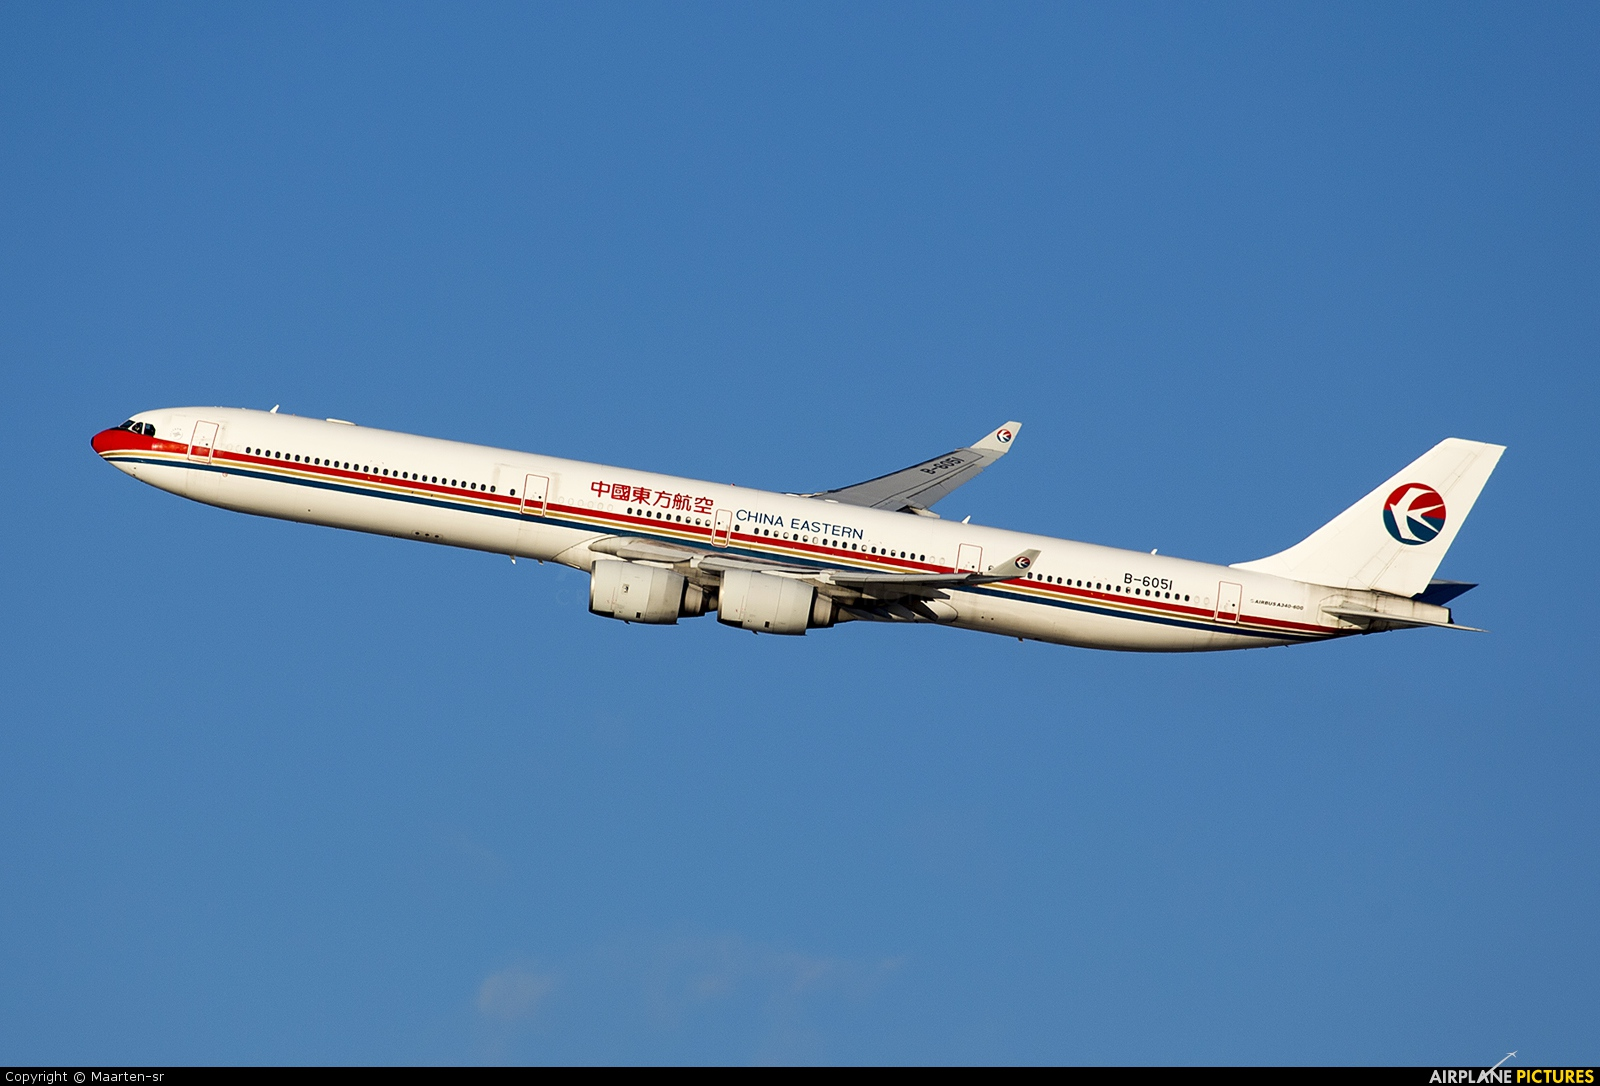 China Eastern Airlines B-6051 aircraft at New York - John F. Kennedy Intl